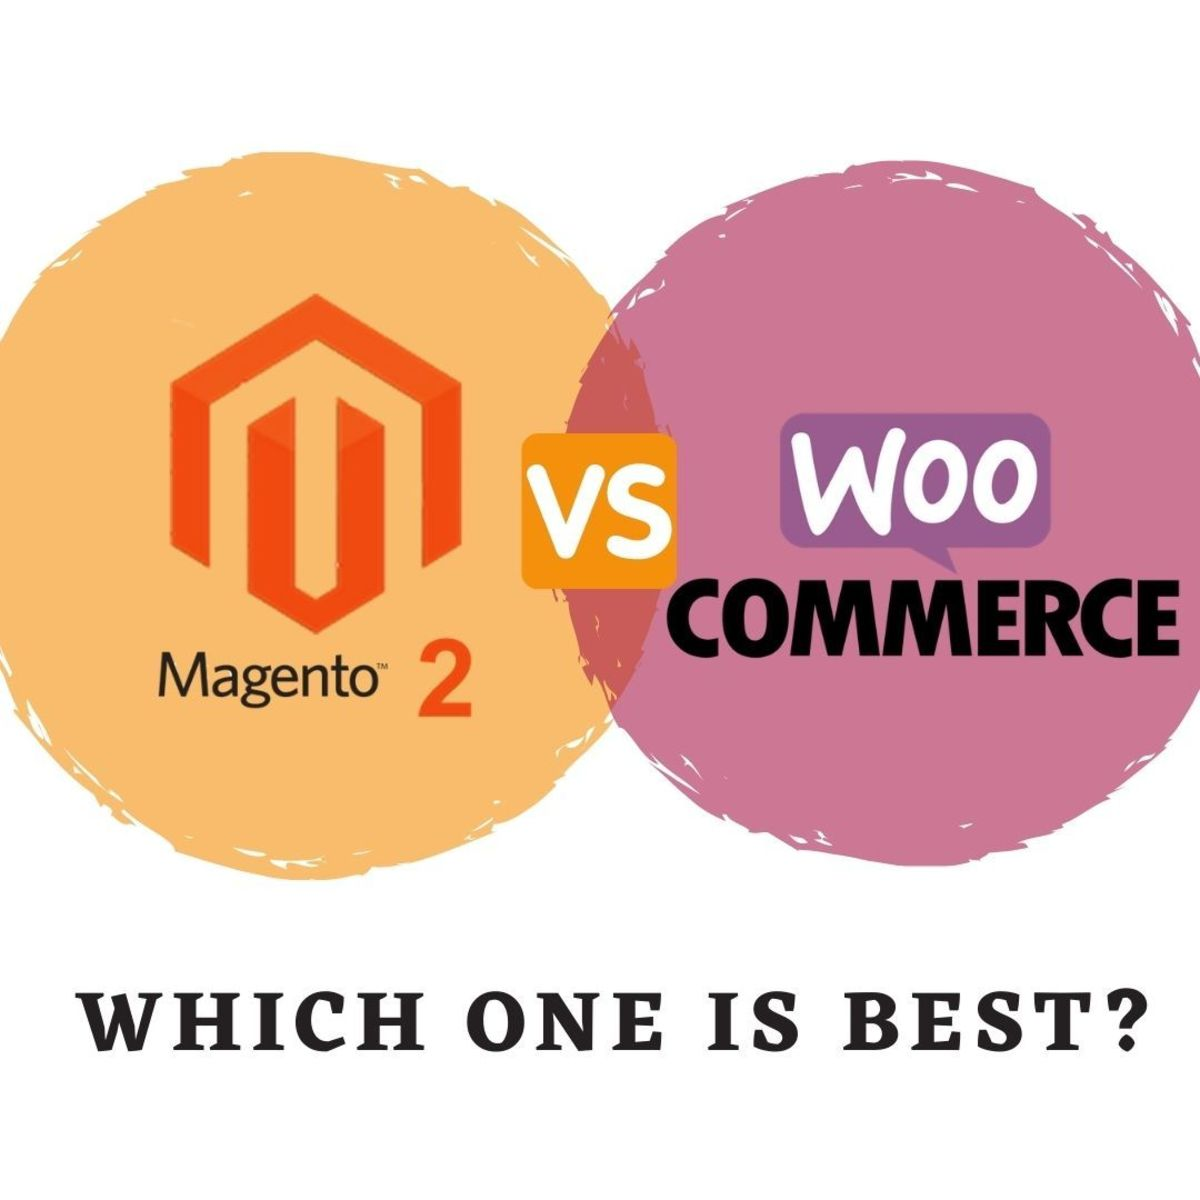 Magento Vs Woocommerce: Which One Is Better? an Introduction for Beginners